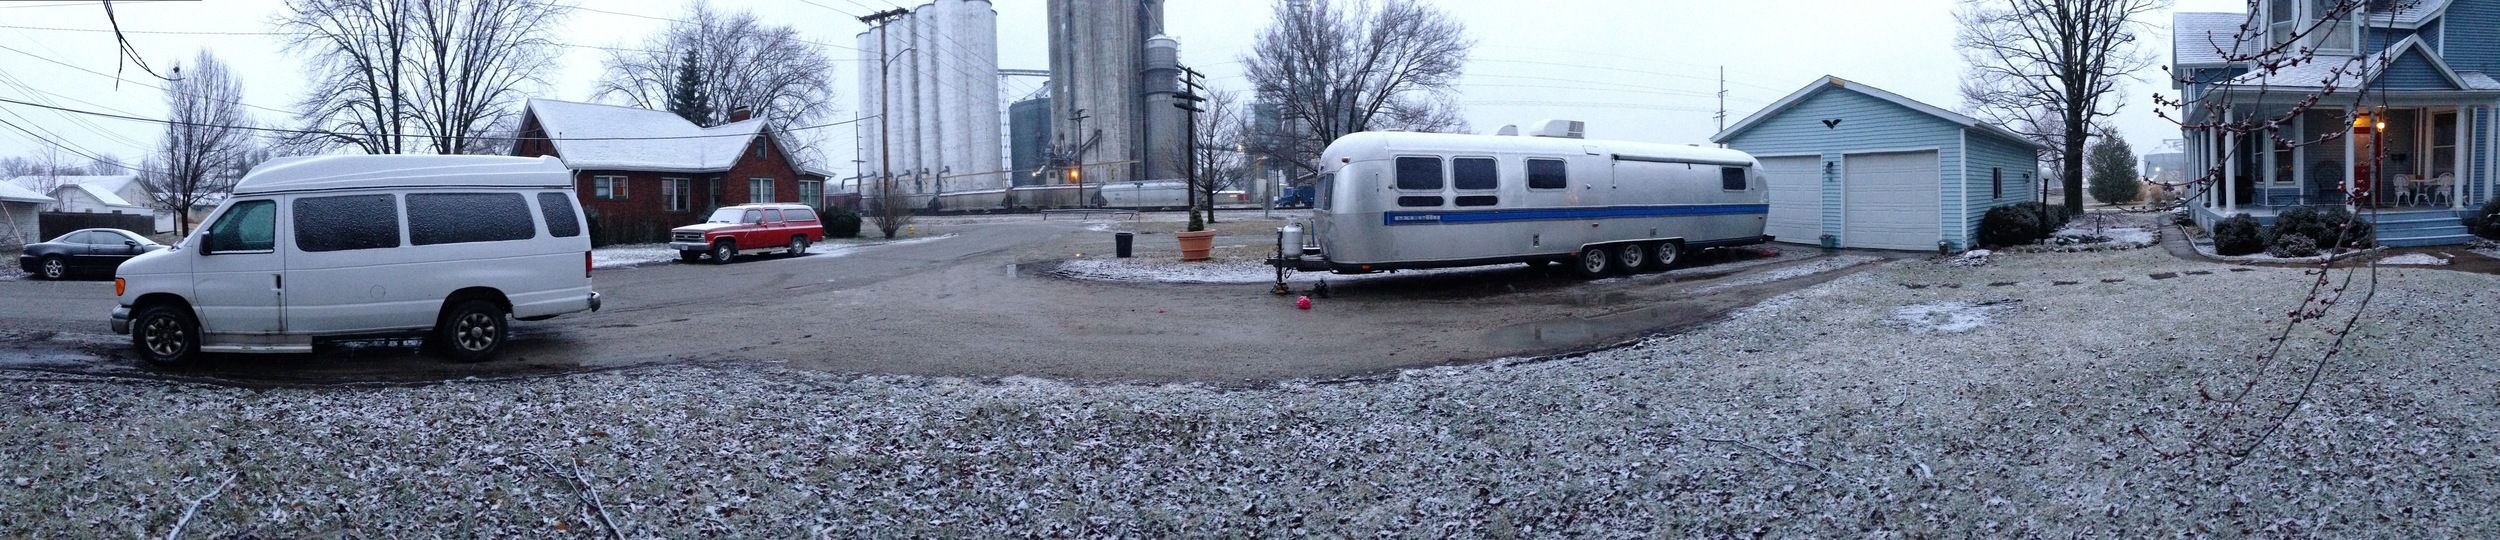 The Airstream parked in Effingham on a snowy Monday.